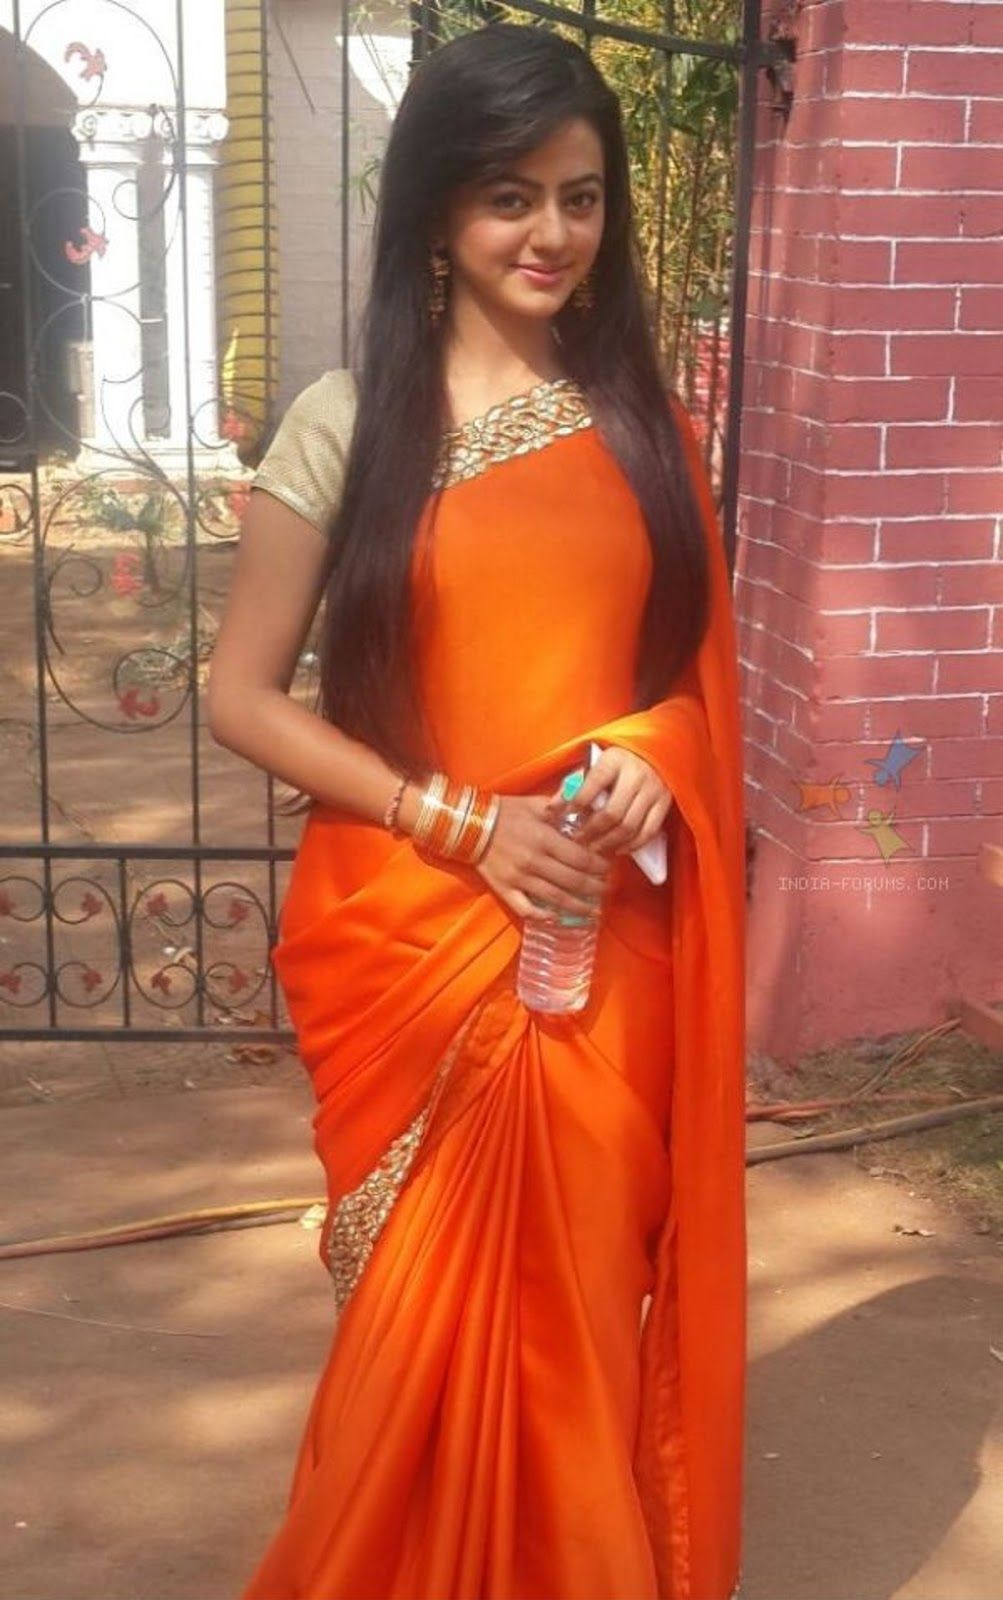 Helly Shah Hd Wallpapers Free Download Beautiful Girls Helly